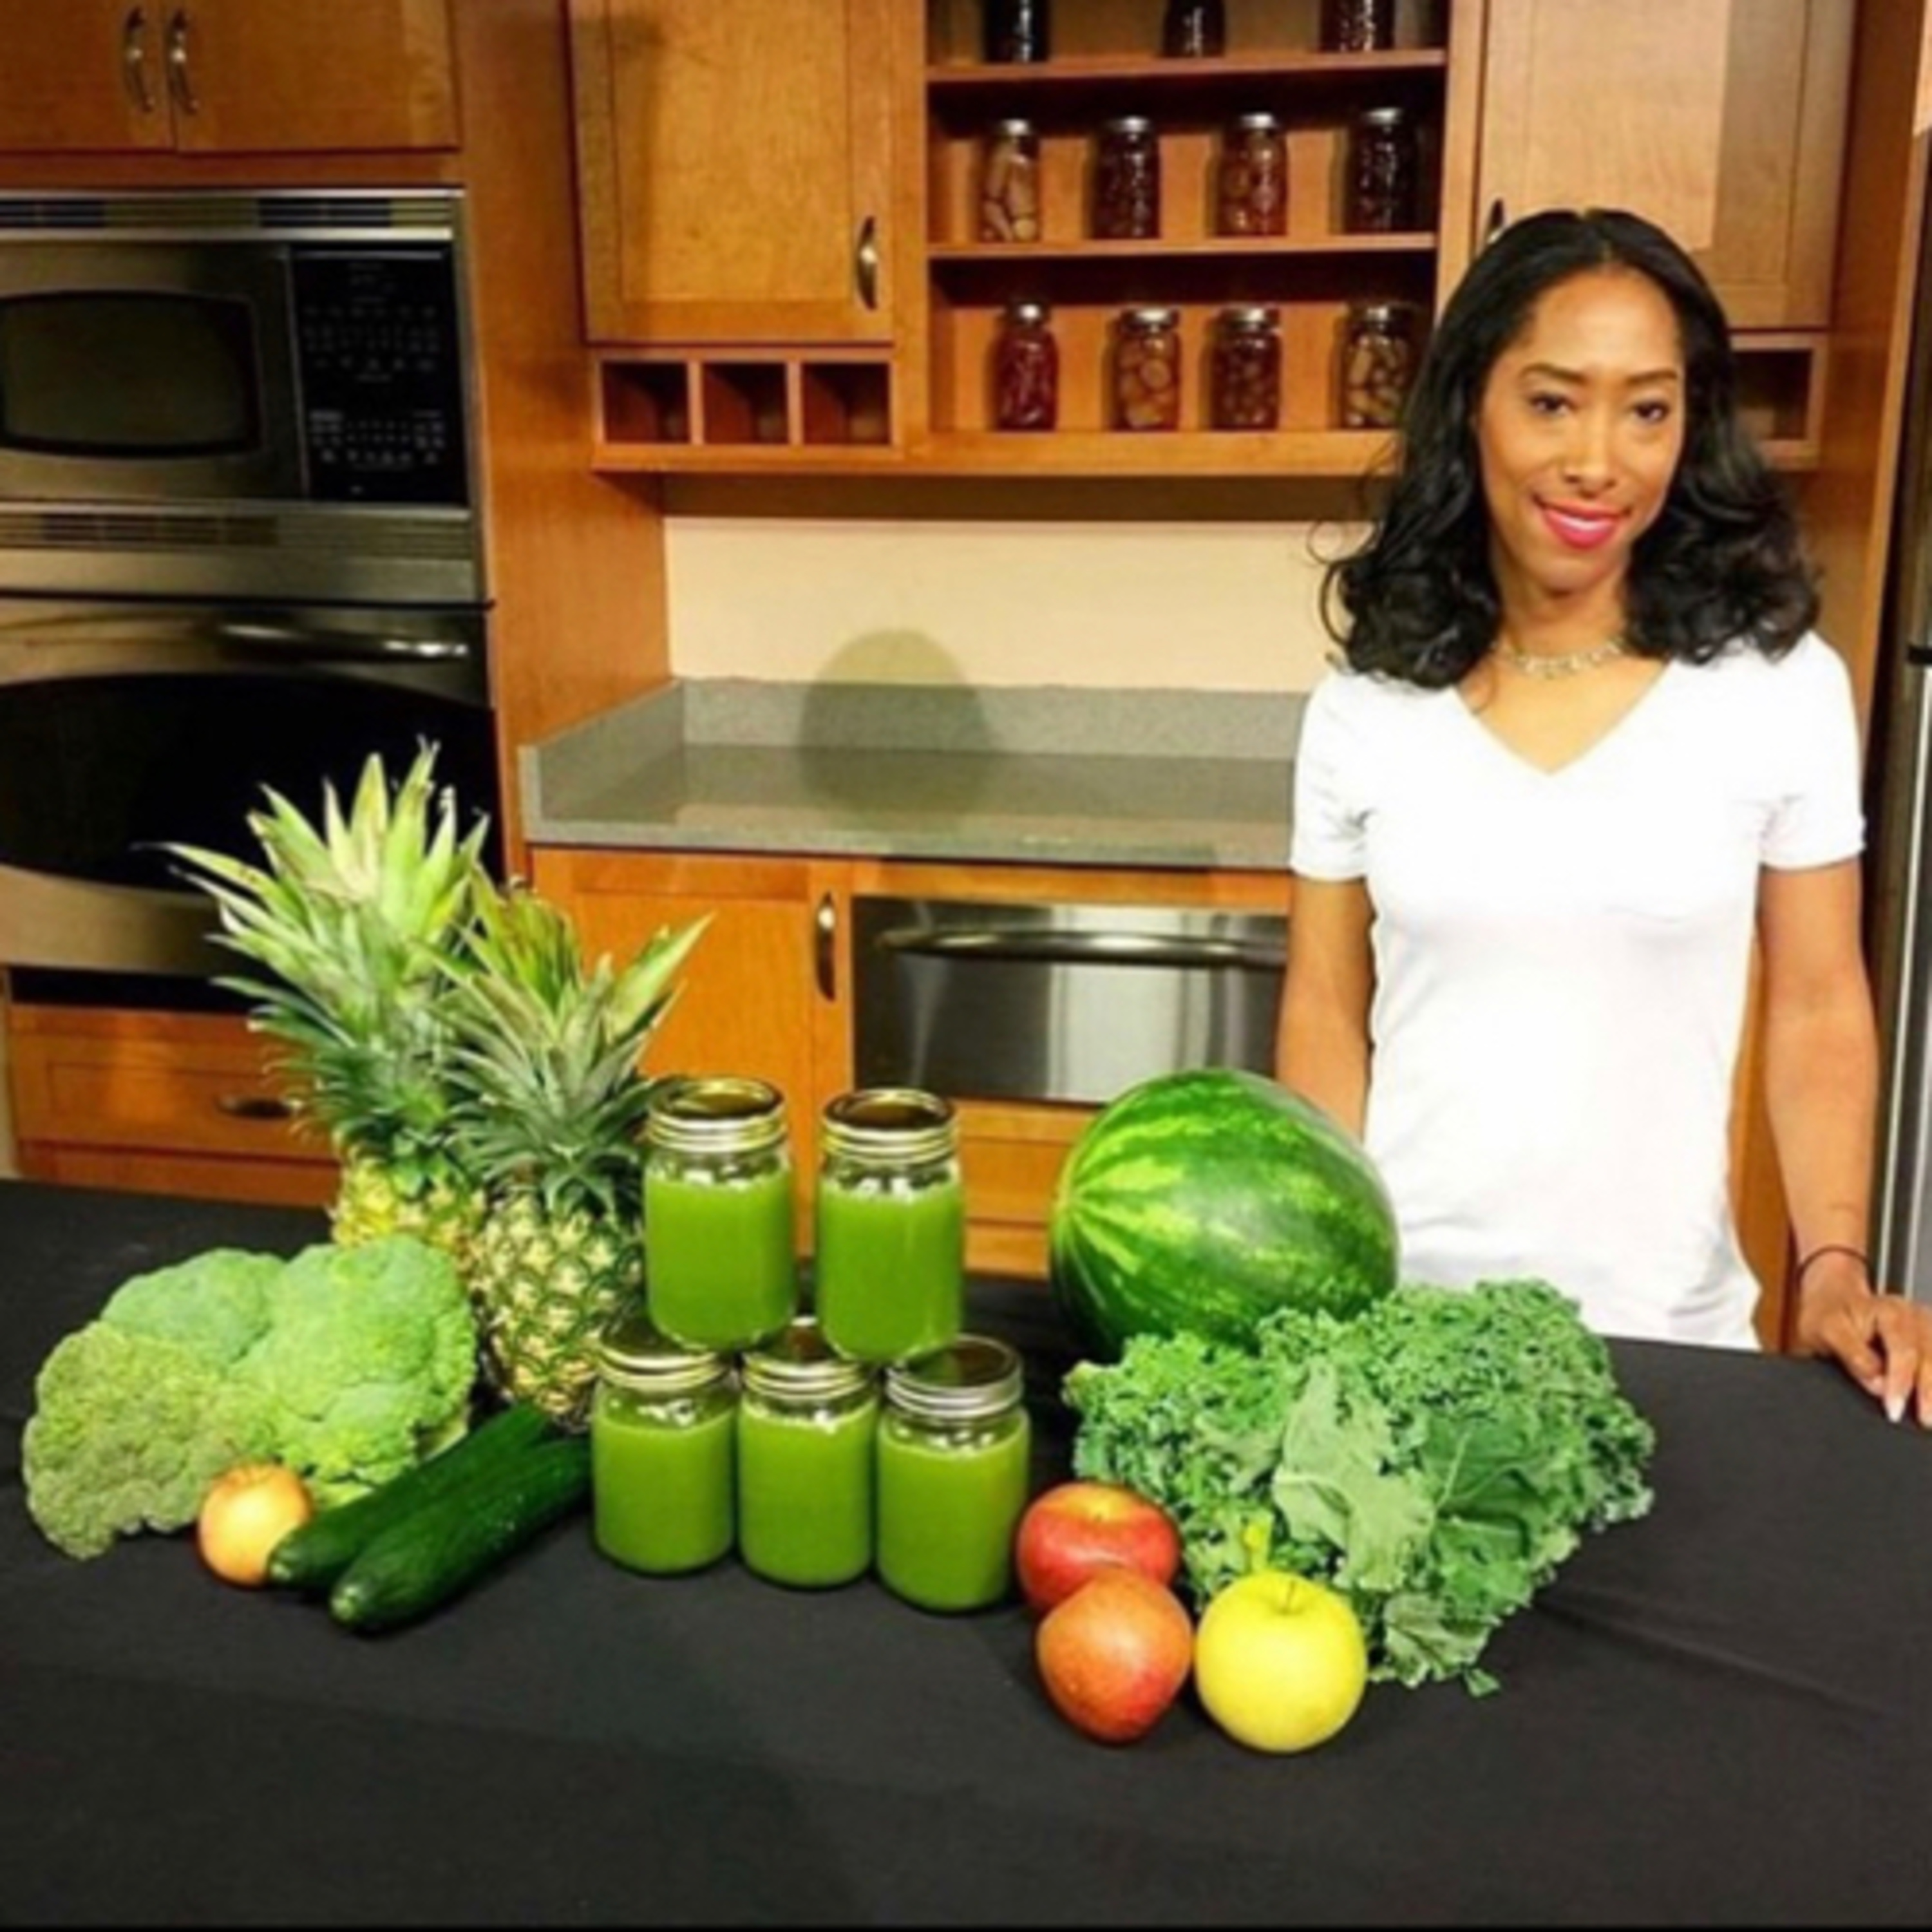 You Got the Juice Now: Holistic Health Coach Melise Frazier Builds an Empire after a Health Scare